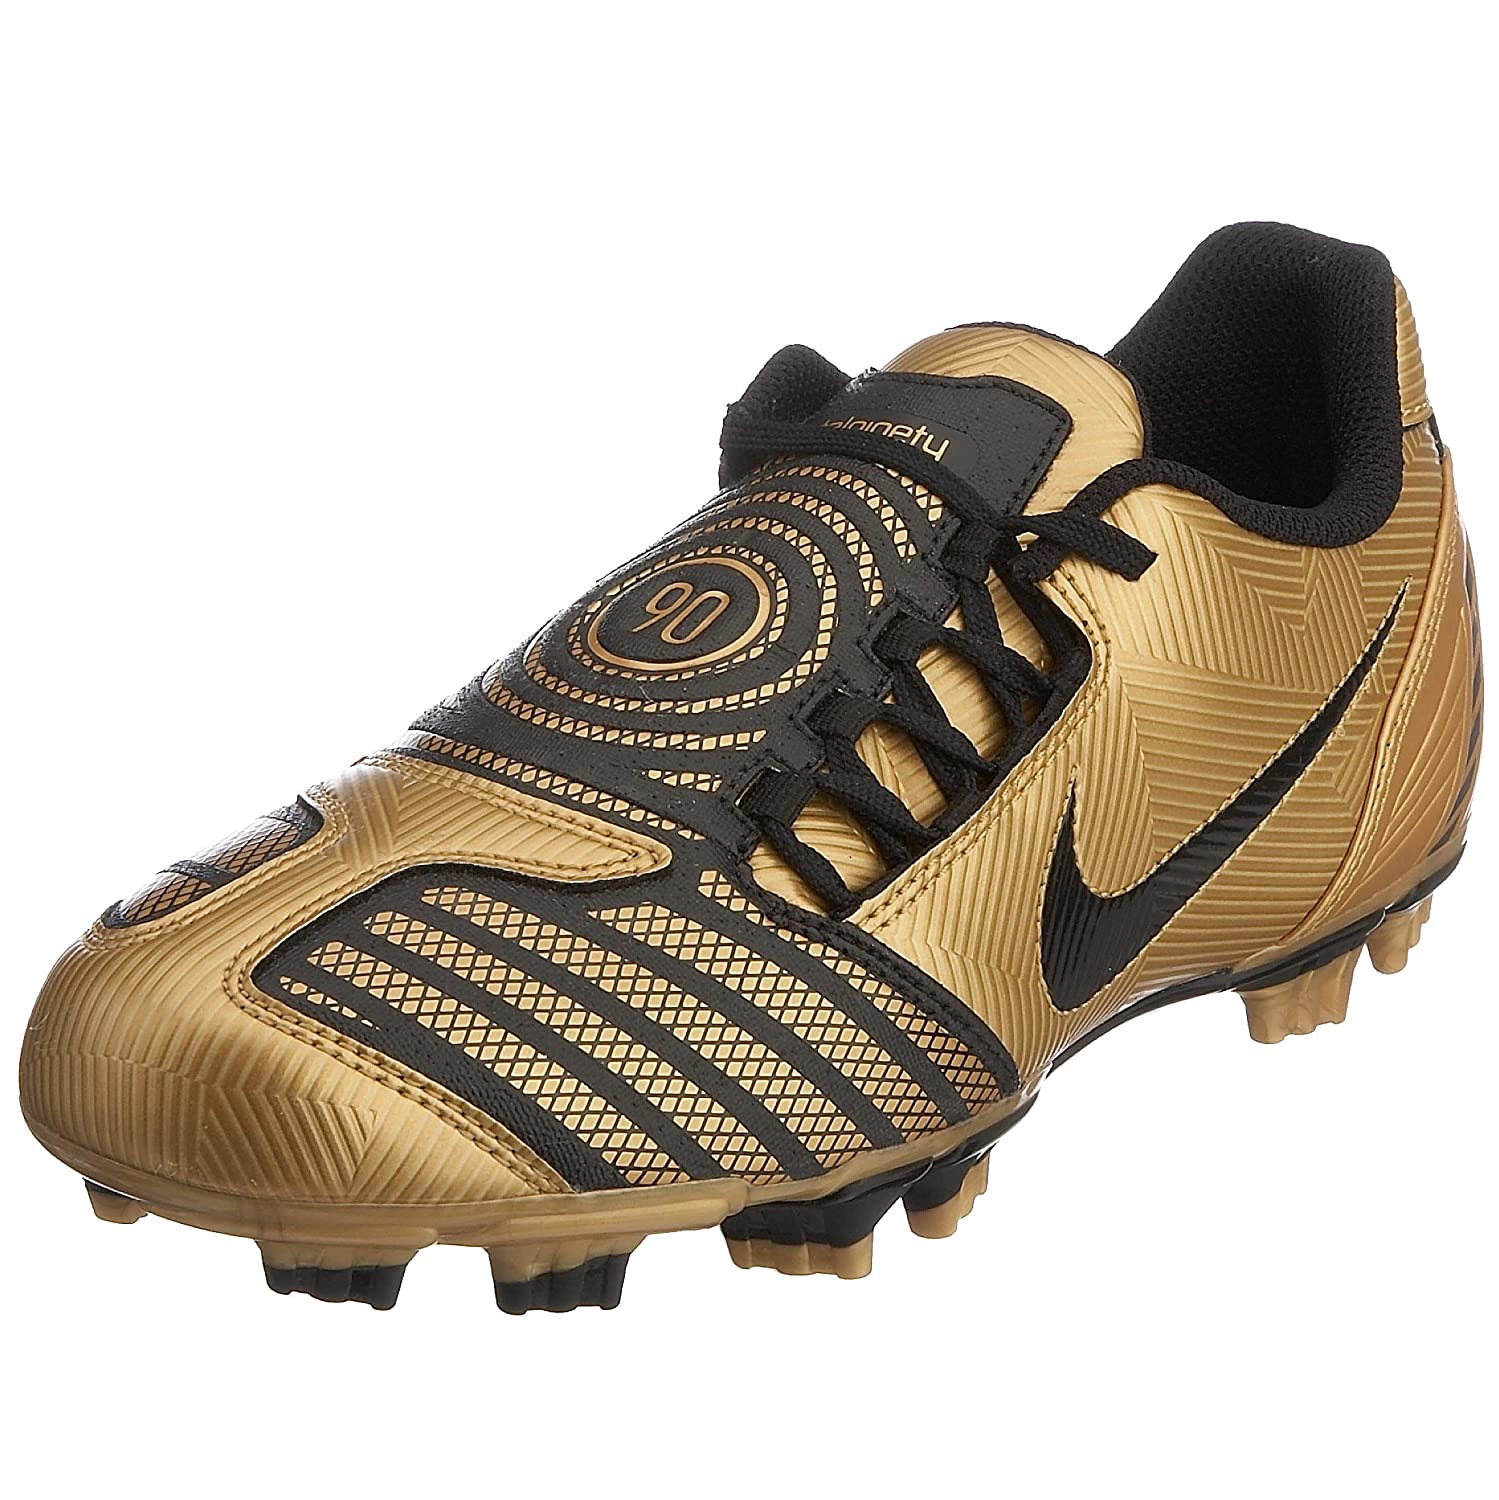 Nike Total 90 Shoot II FG Jnr Calcio Uomo